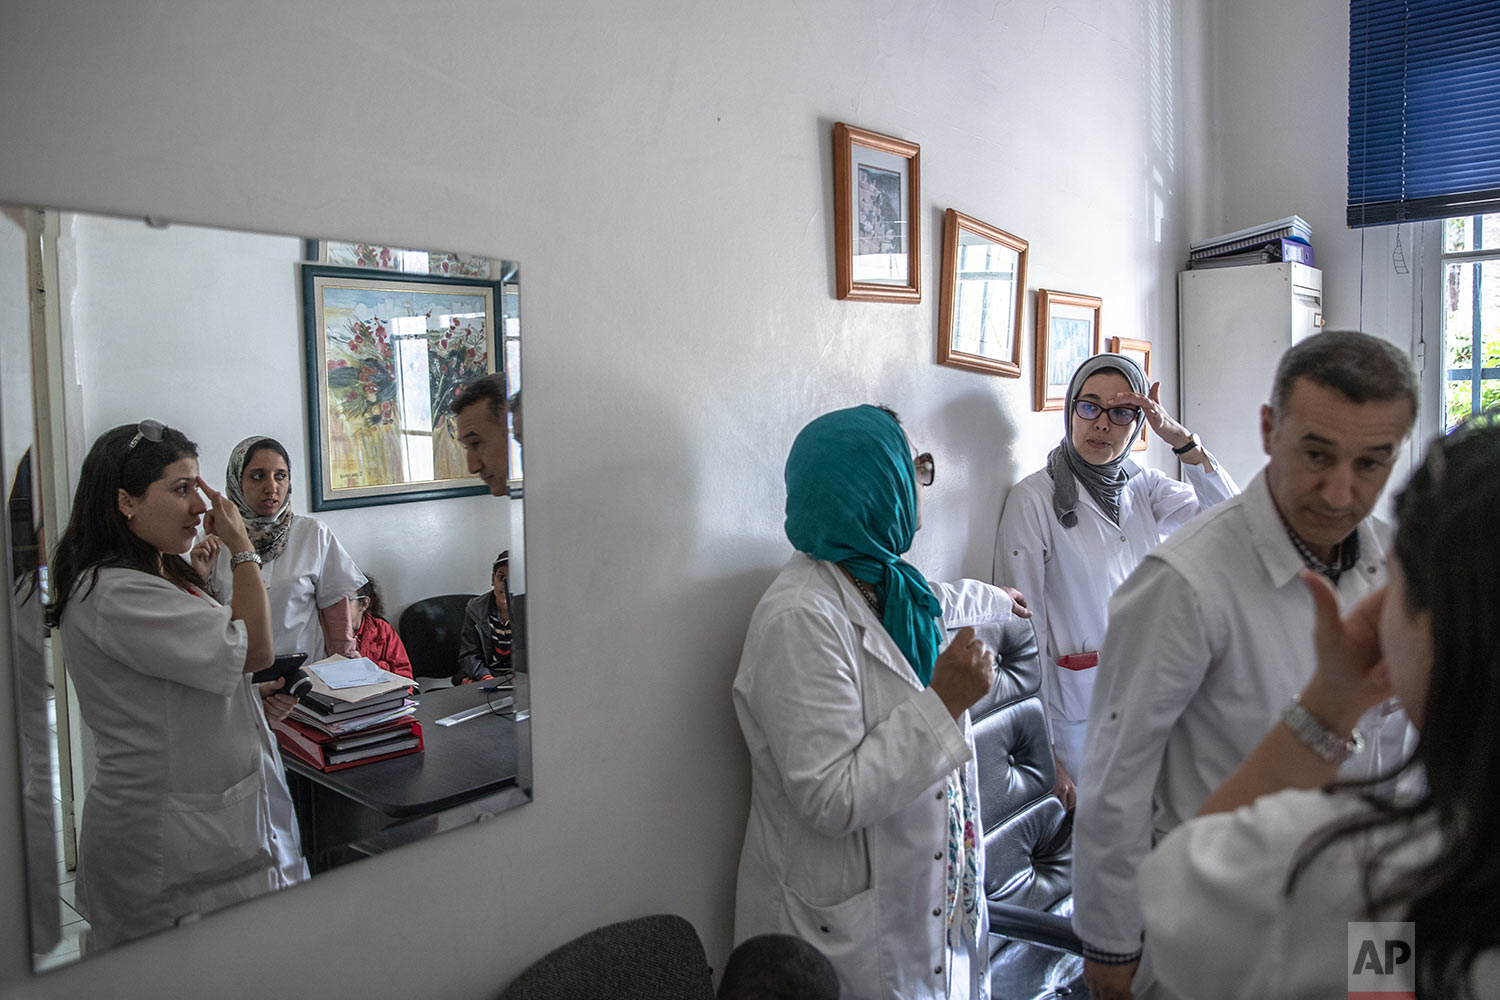 Dermatologists gather information on children affected by a rare disorder called xeroderma pigmentosum, or XP, inside a hospital in Casablanca, Morocco, July 24, 2019. (AP Photo/Mosa'ab Elshamy)